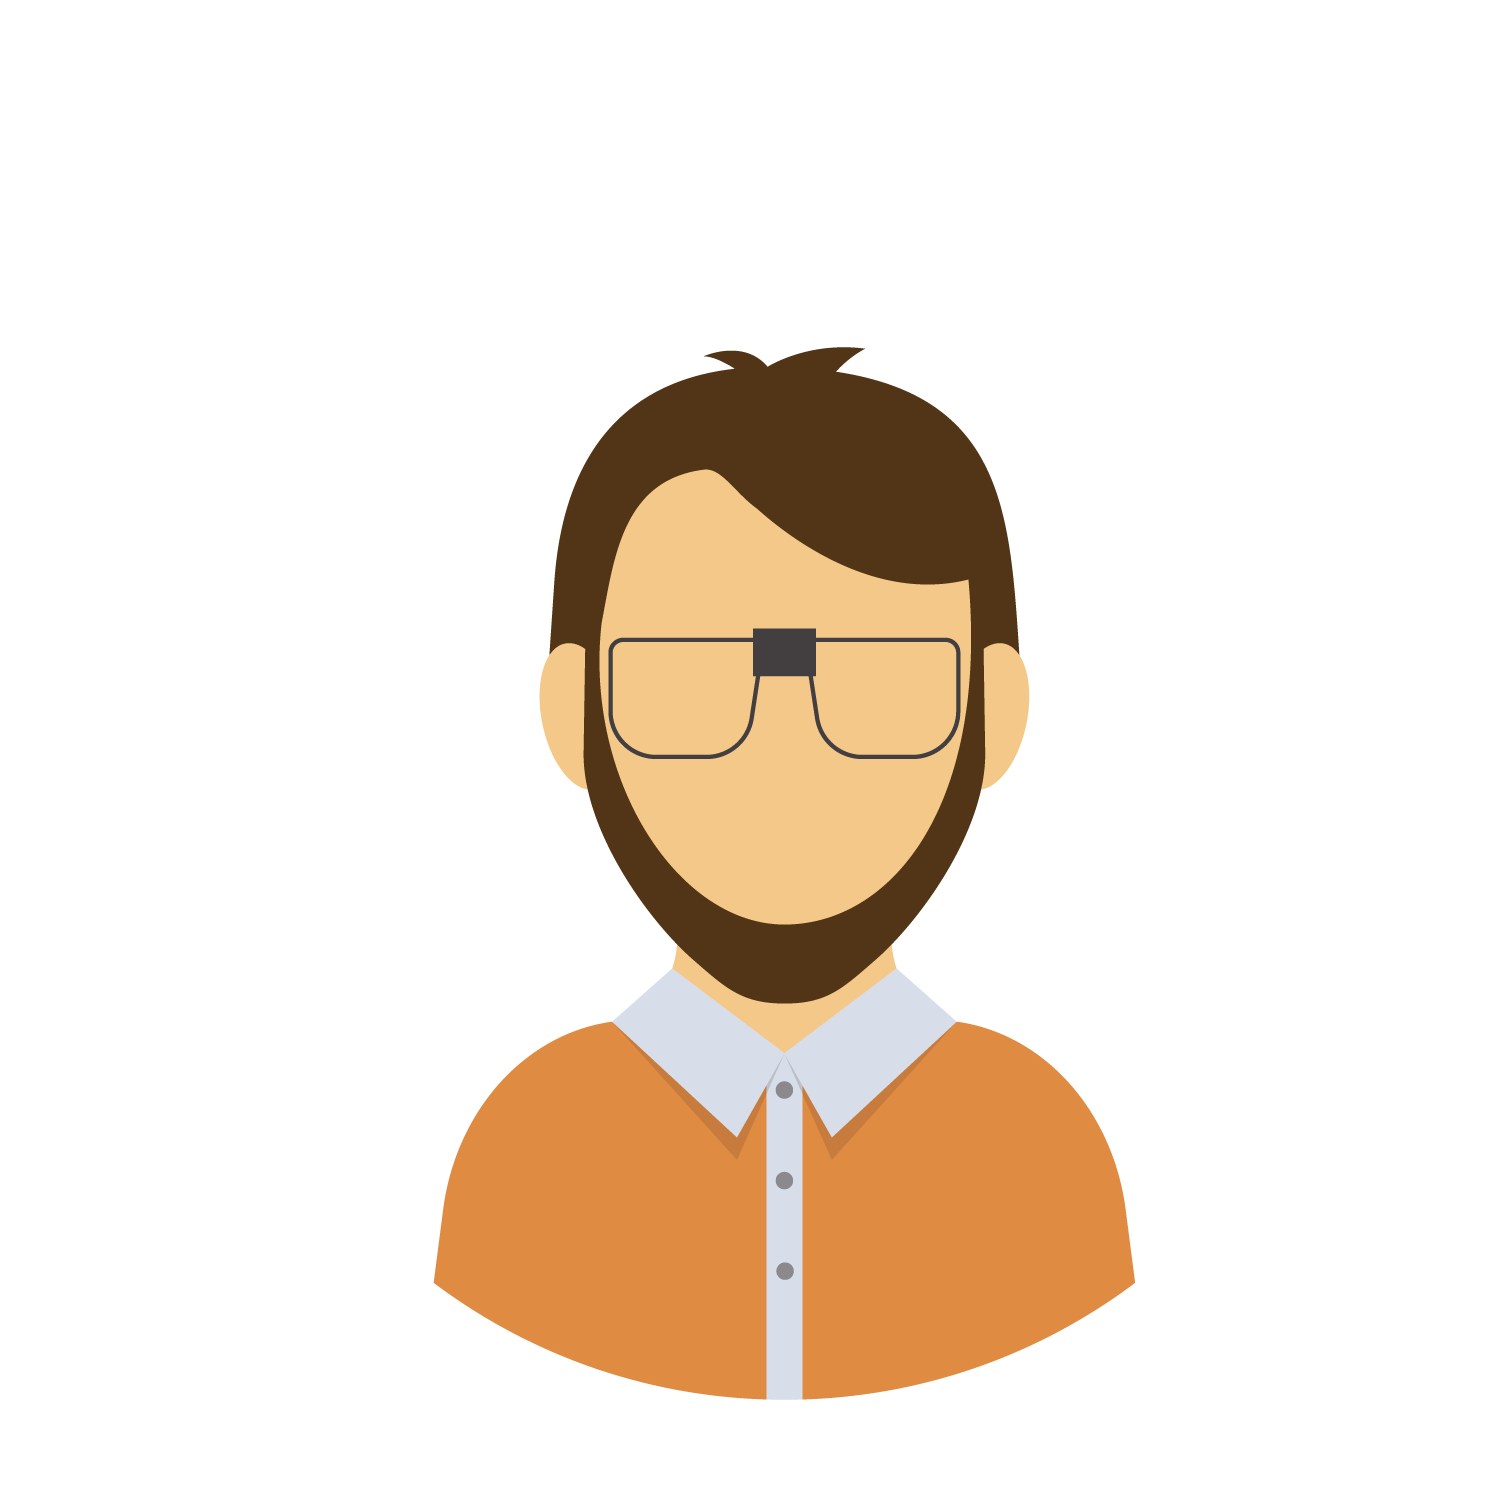 Humans clipart college student. Cartoon drawing wearing glasses